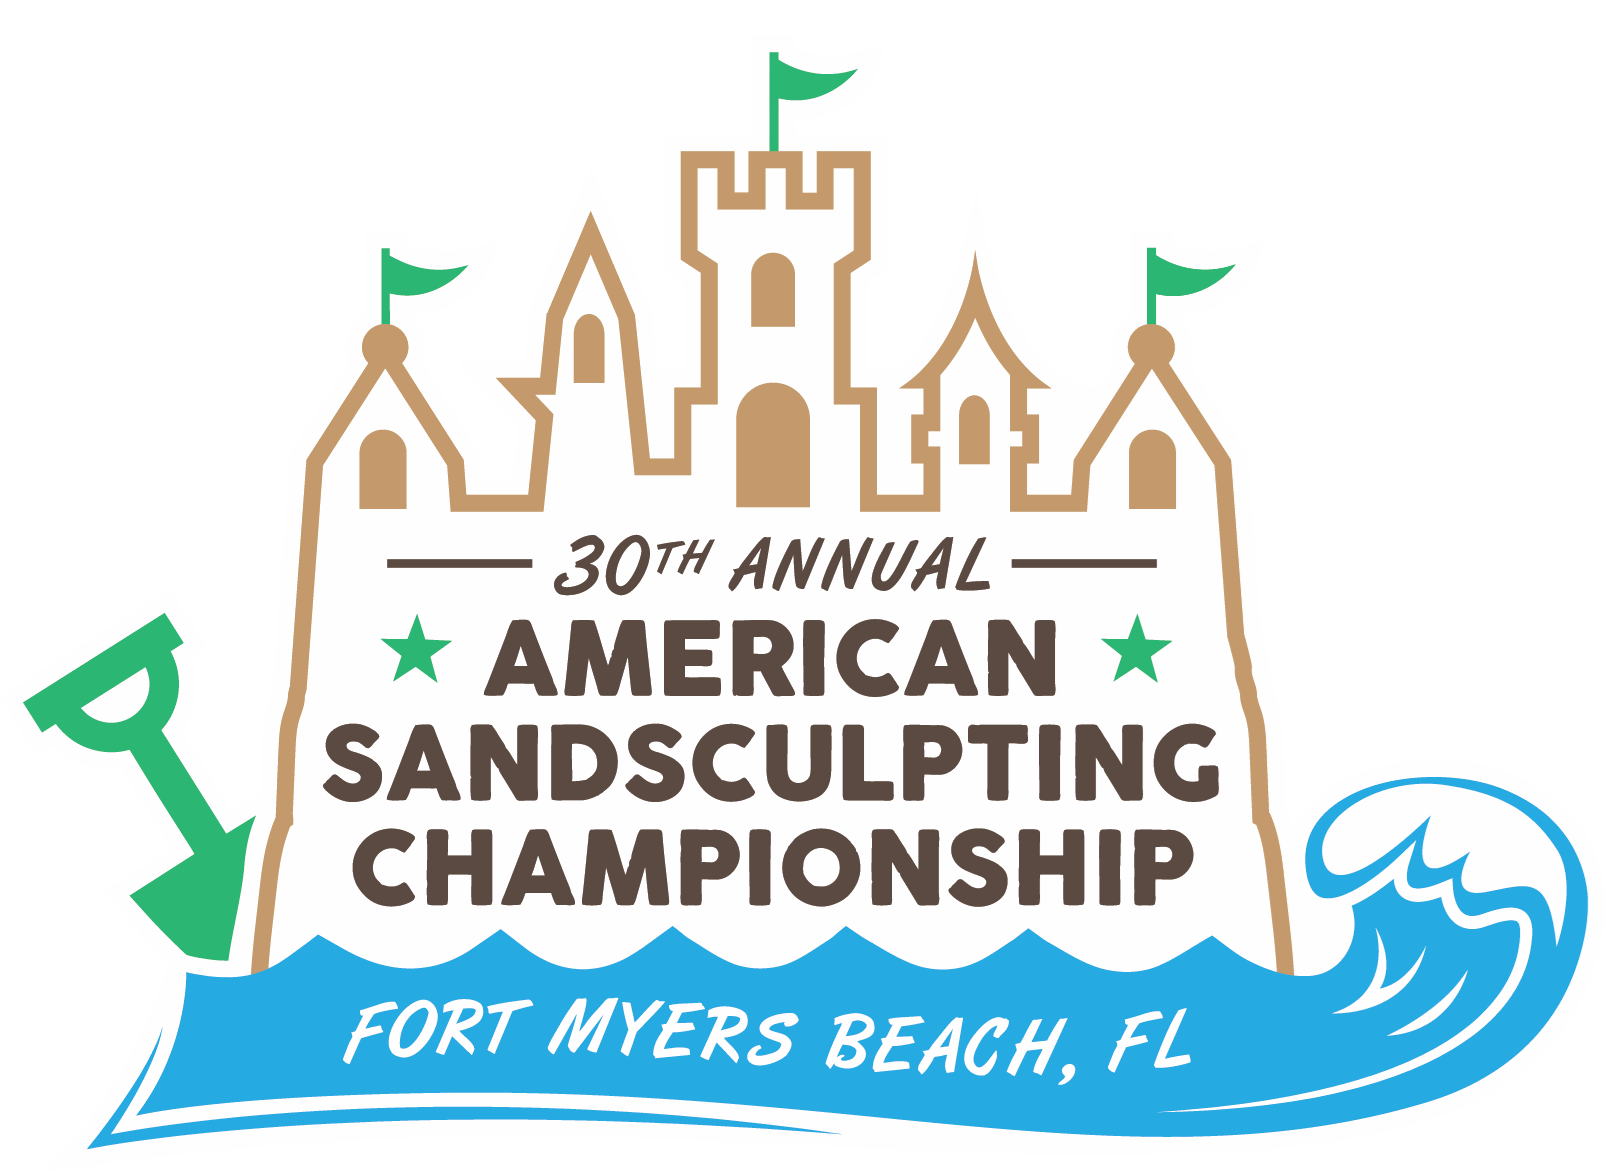 Fort Myers Beach Sand Sculpting Championship